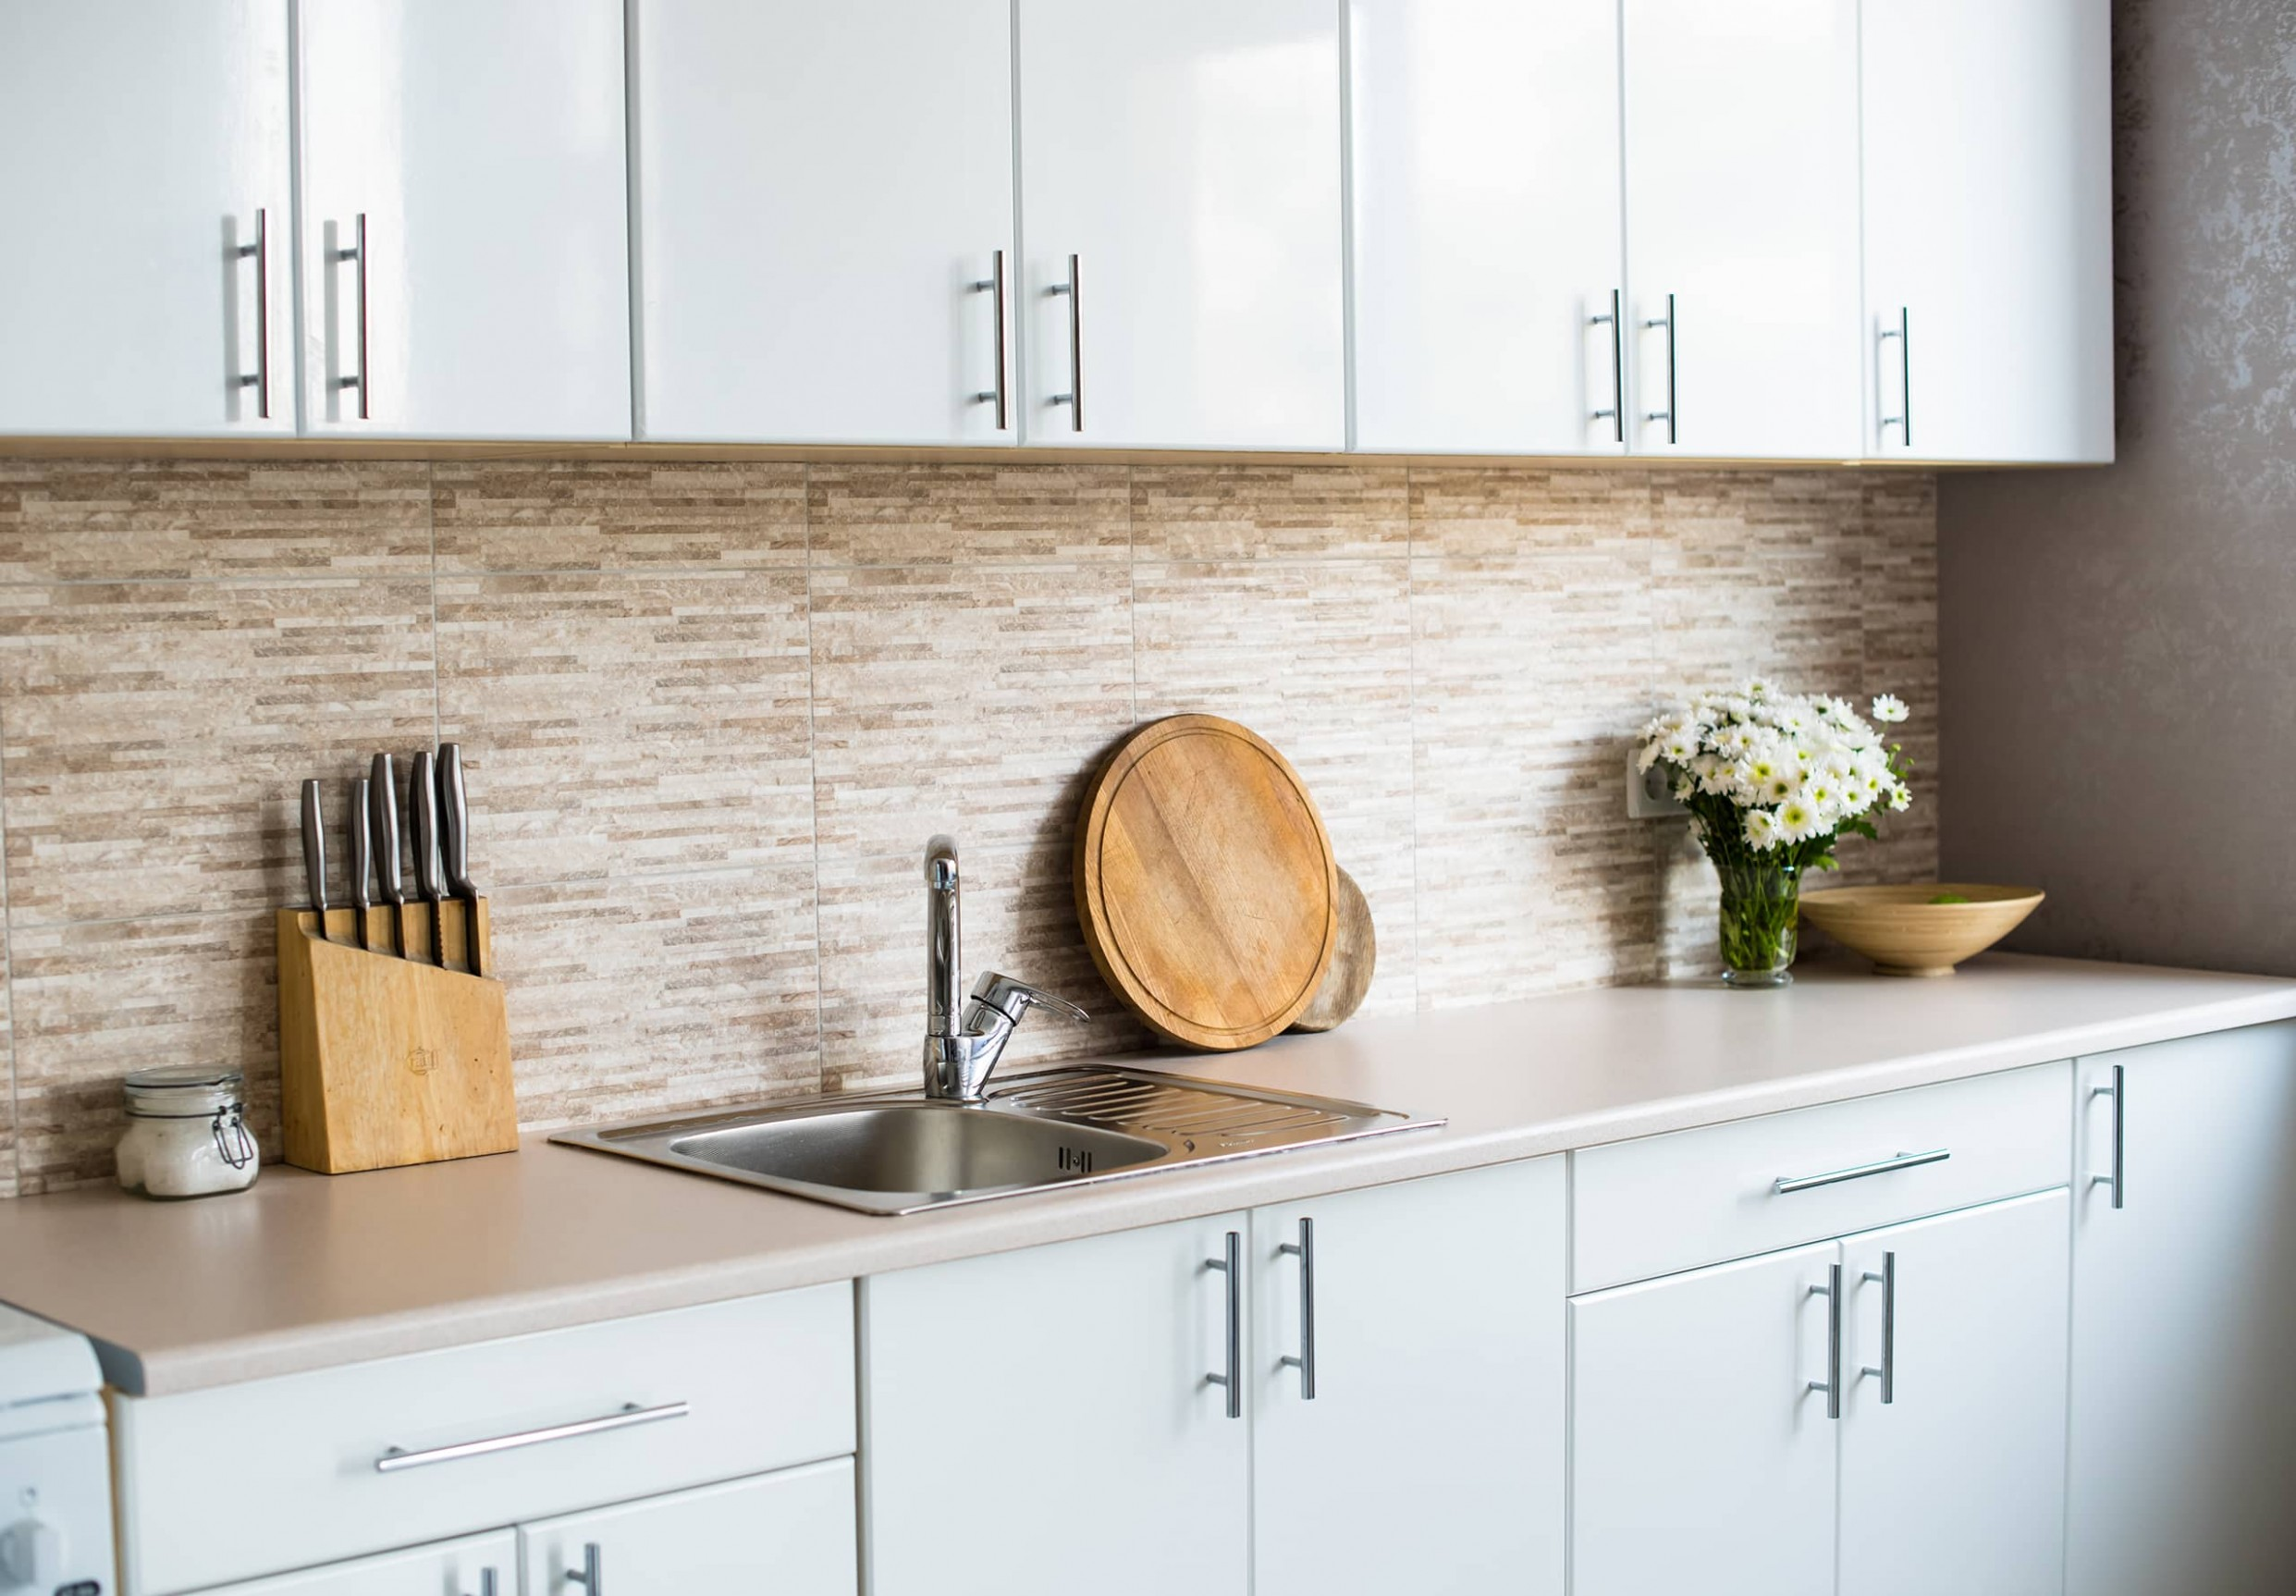 How to Install Cabinet Door Handles : True Position Tools - How Do You Install Kitchen Cabinet Pulls